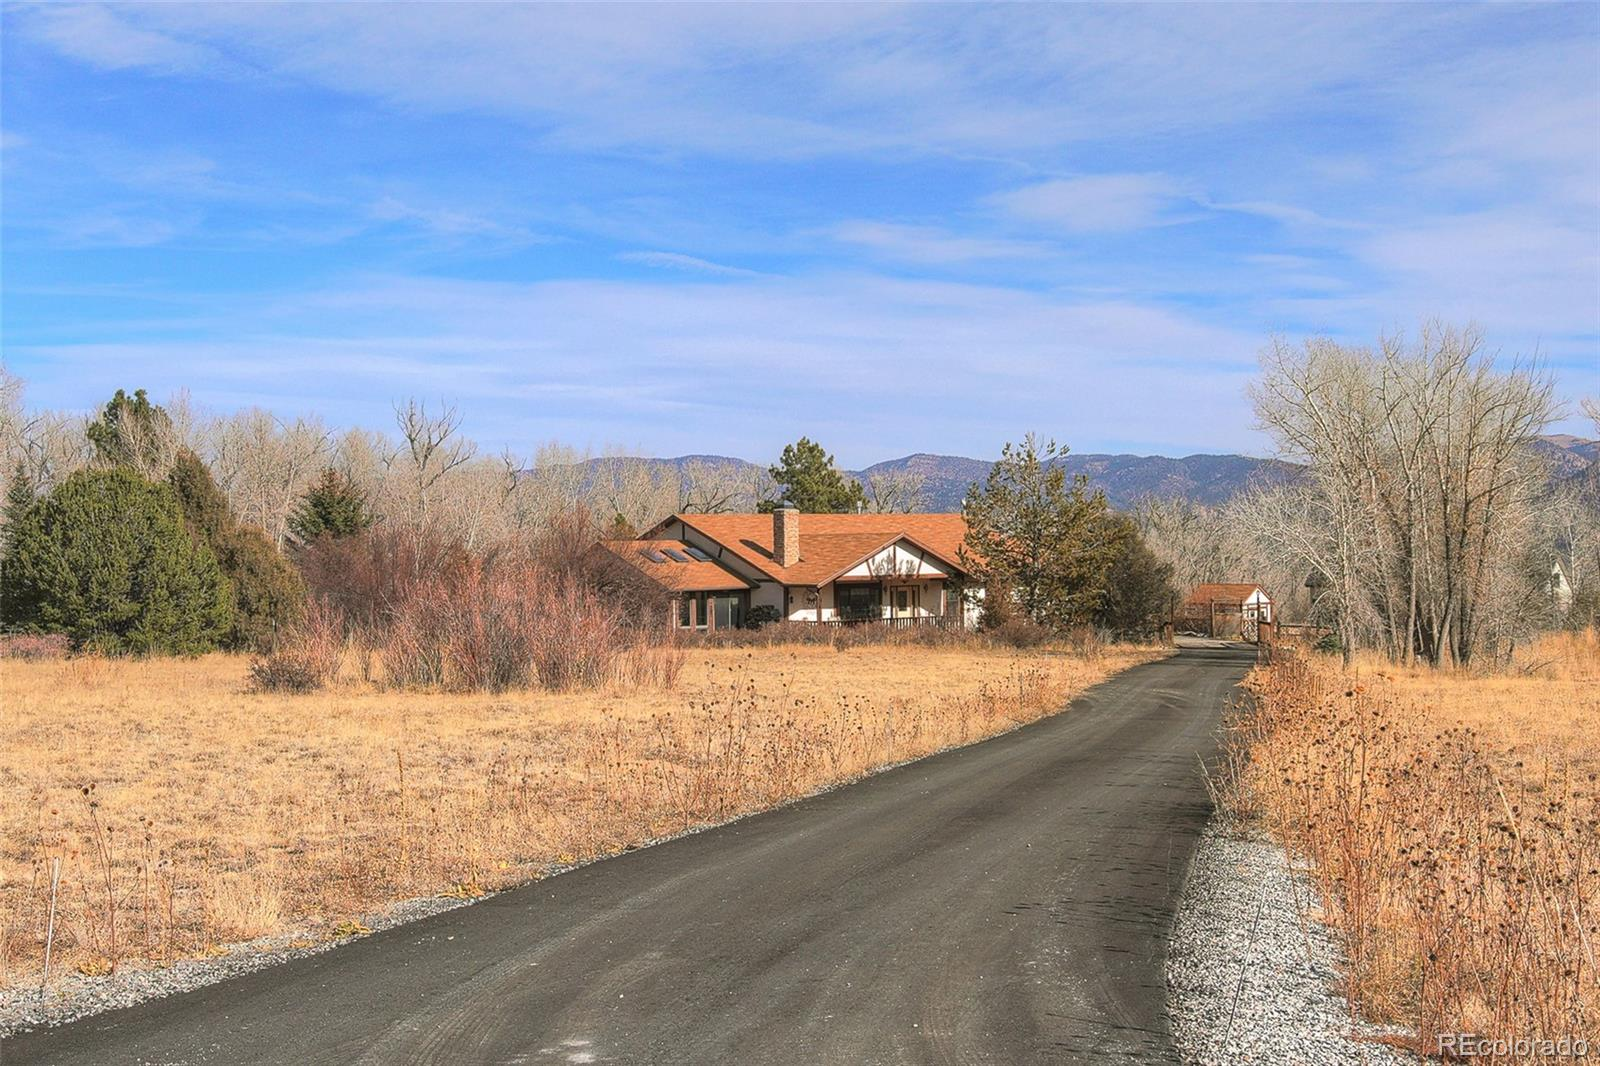 13033 County Road 261d, Nathrop, CO 81236 - Nathrop, CO real estate listing